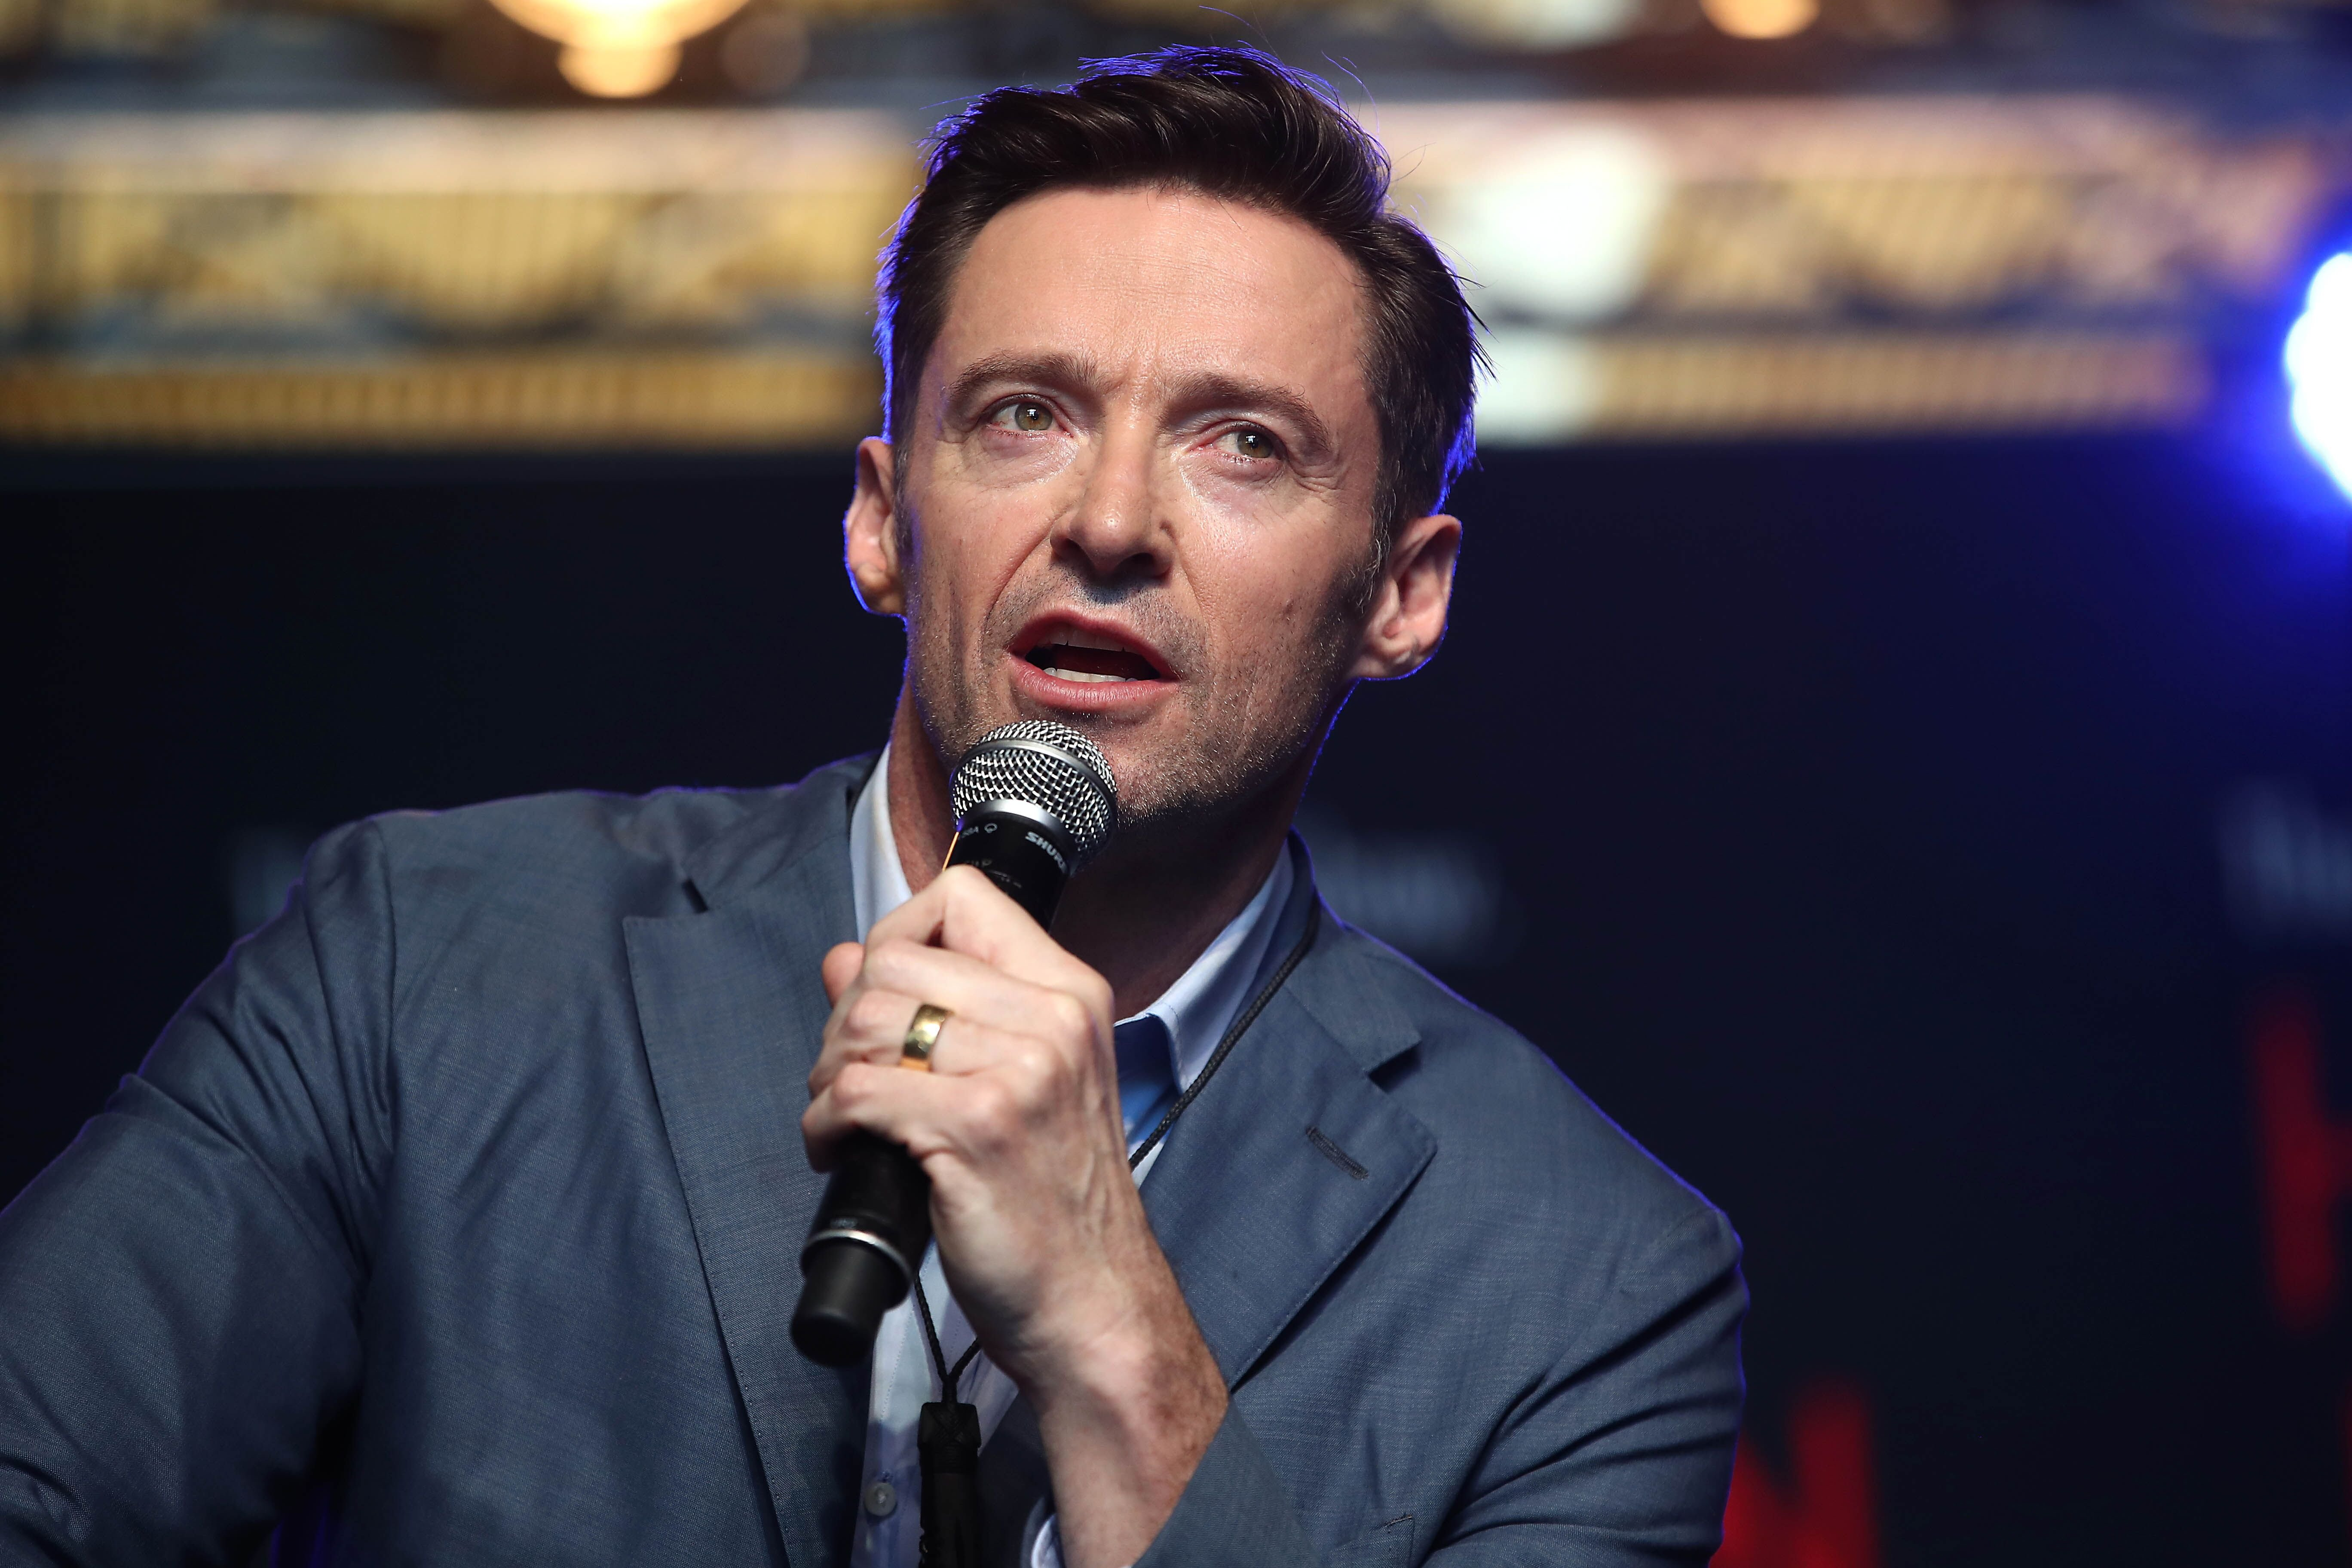 Hugh Jackman speaks to media at AUT's South Campus on February 27, 2019.   Photo: Getty Images